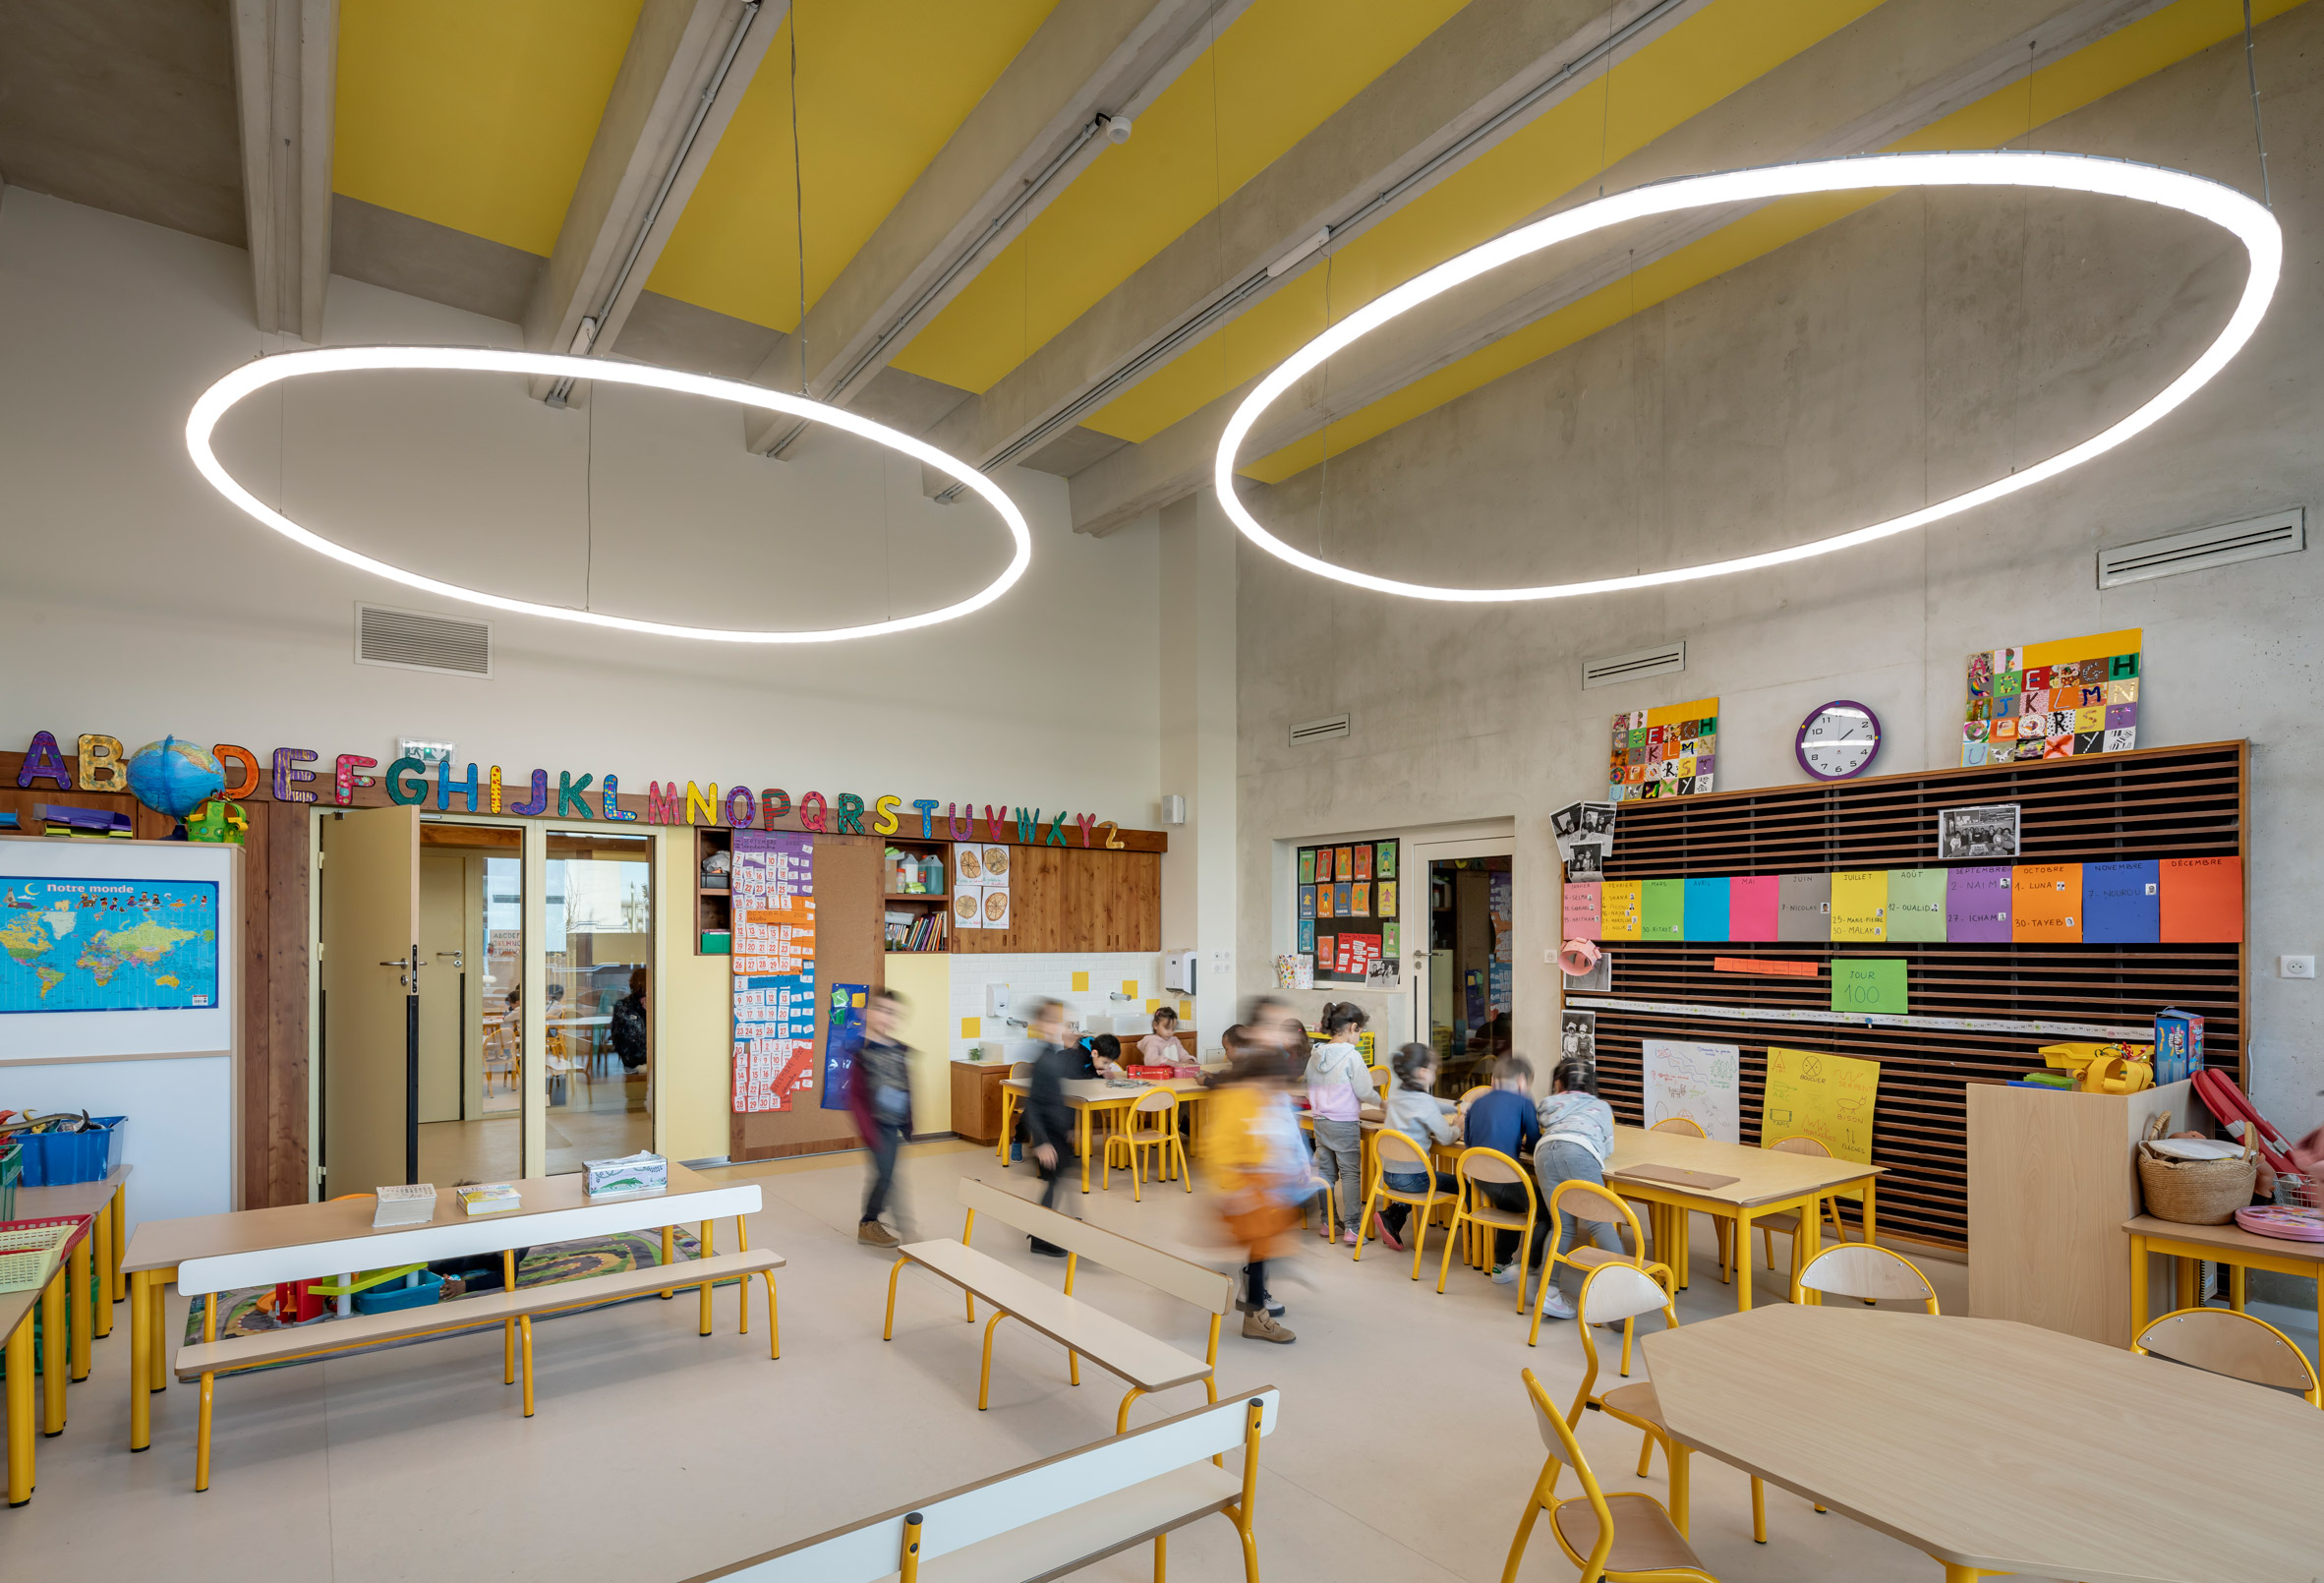 Teaching spaces have halo lighting